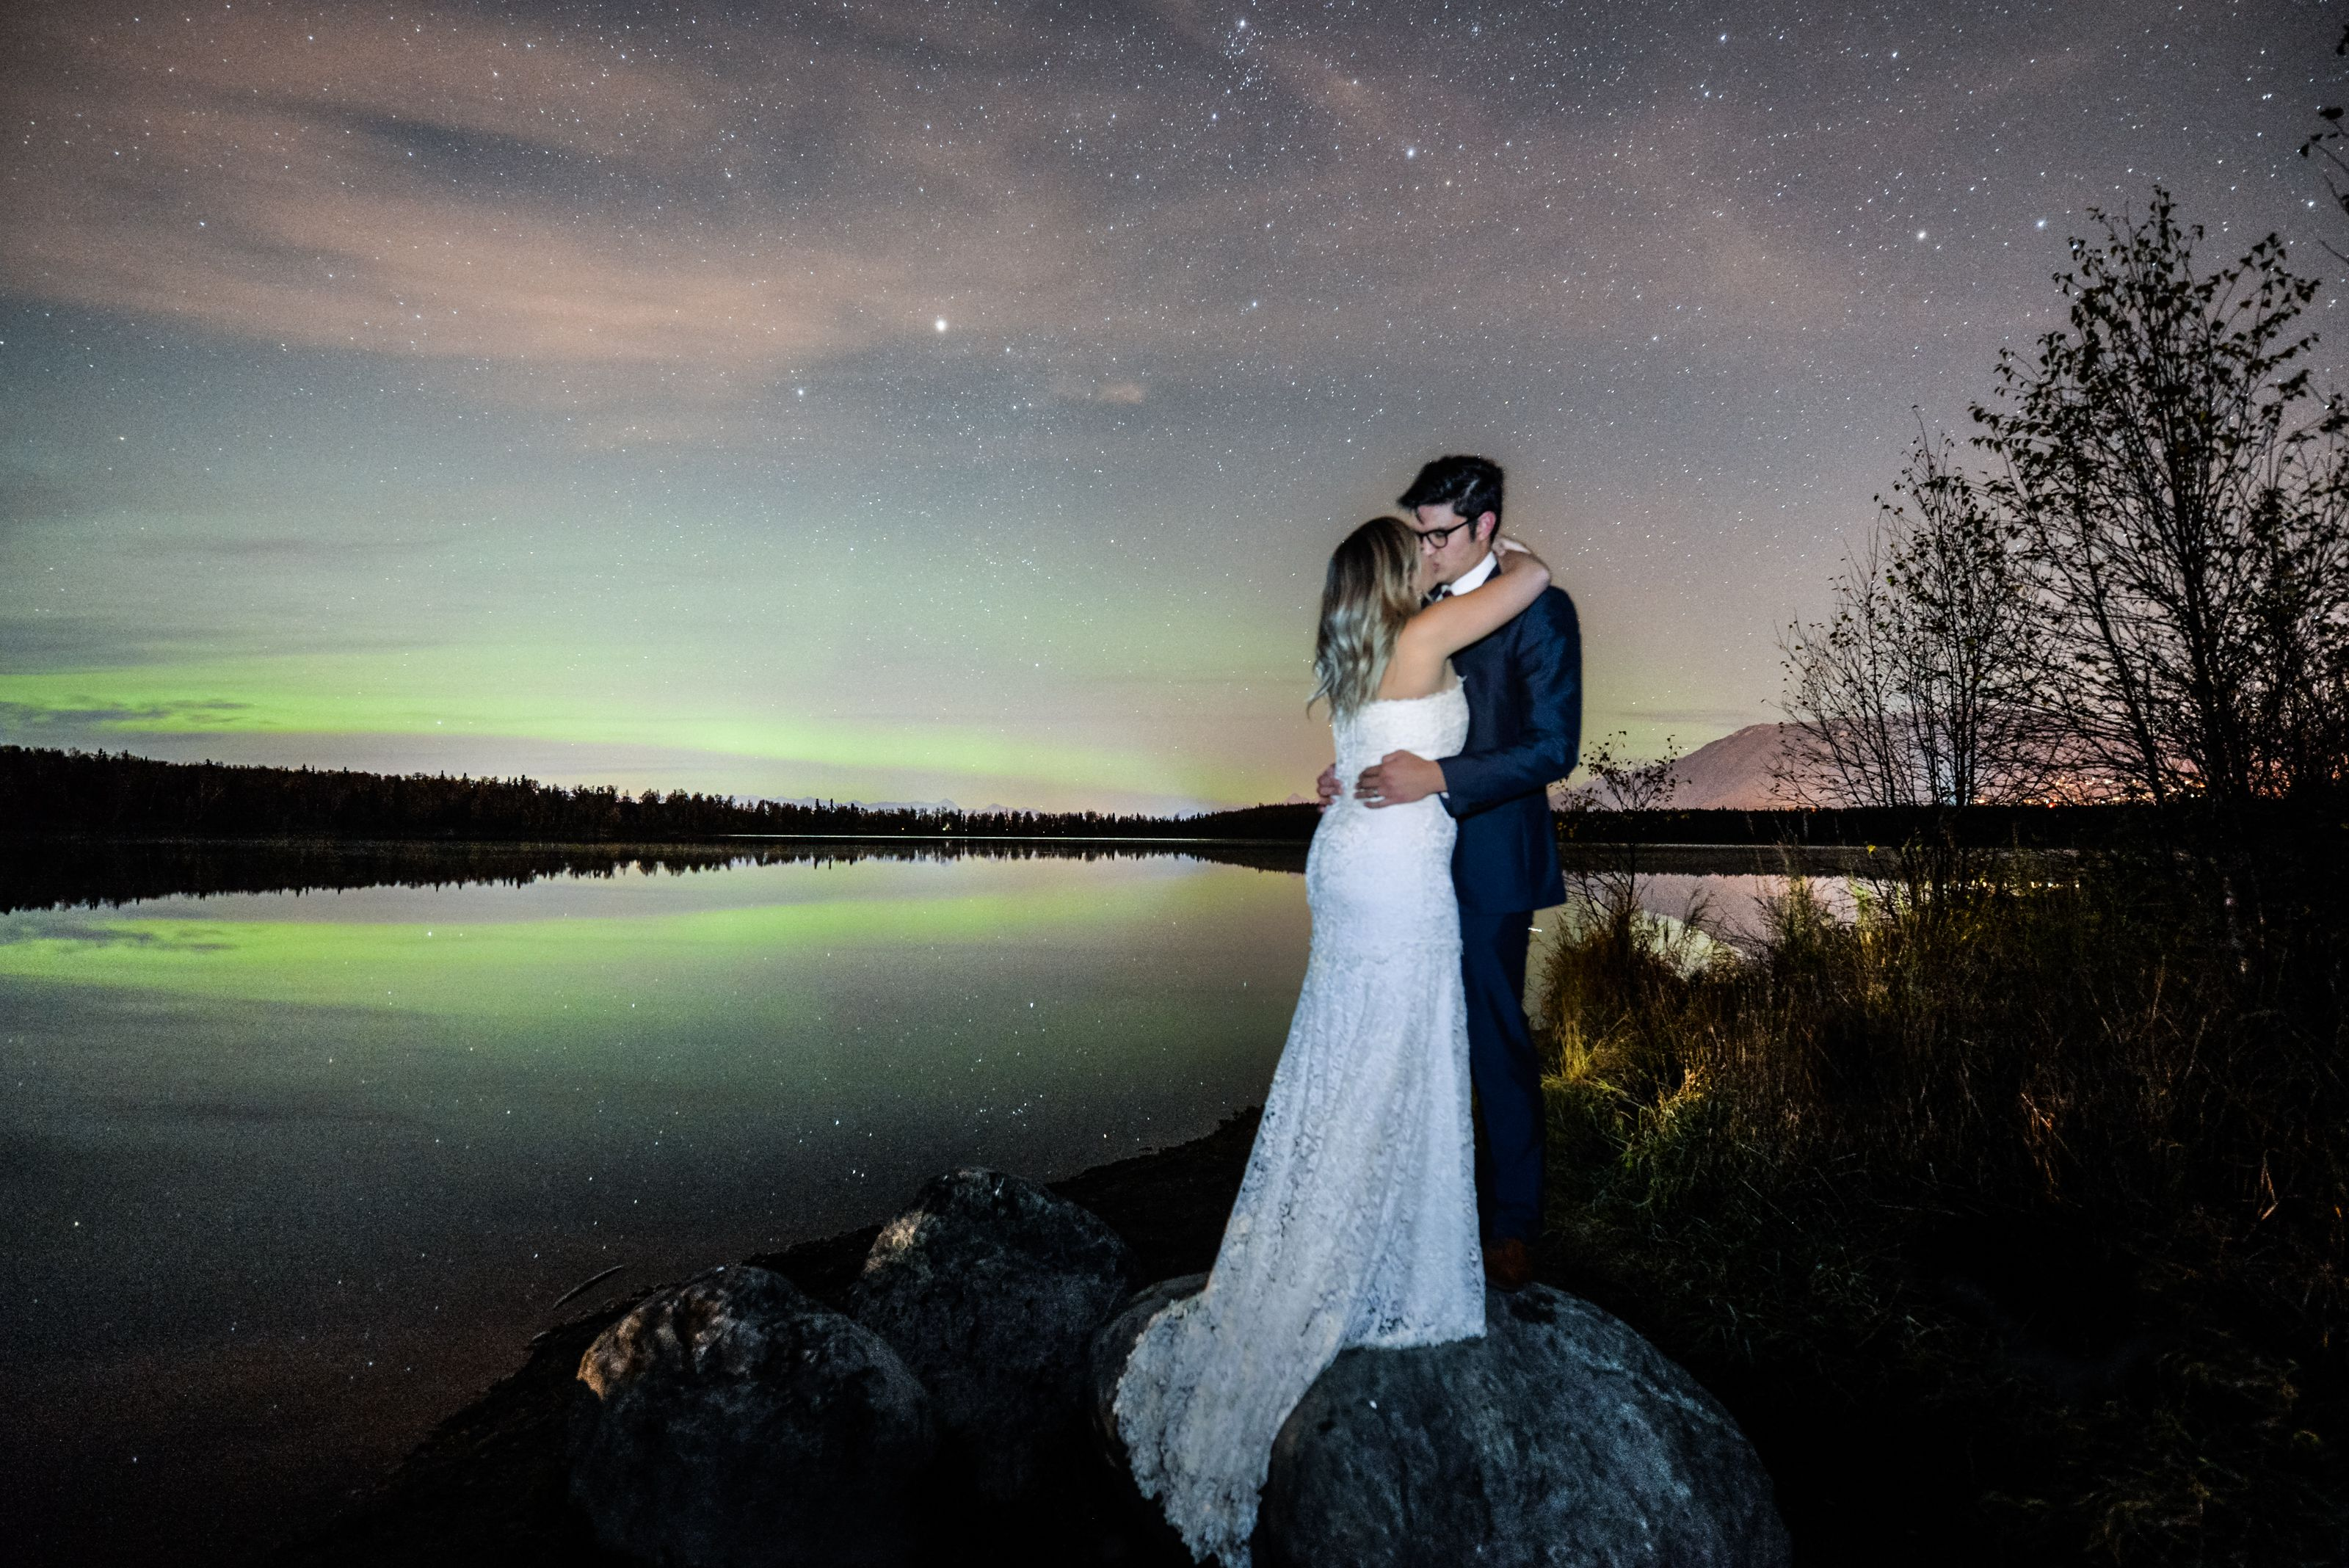 Portrait And Wedding Photography Based In Anchorage Alaska